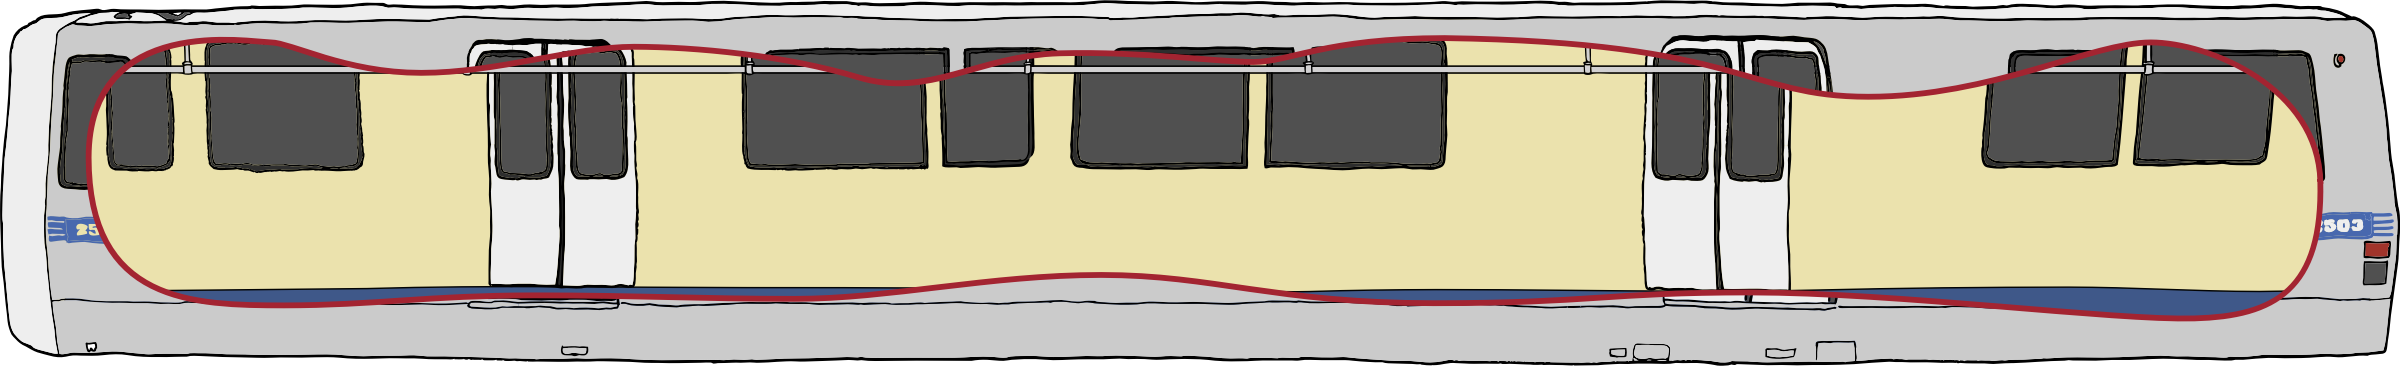 Bart Train Exterior with Cutaway by SteveLambert